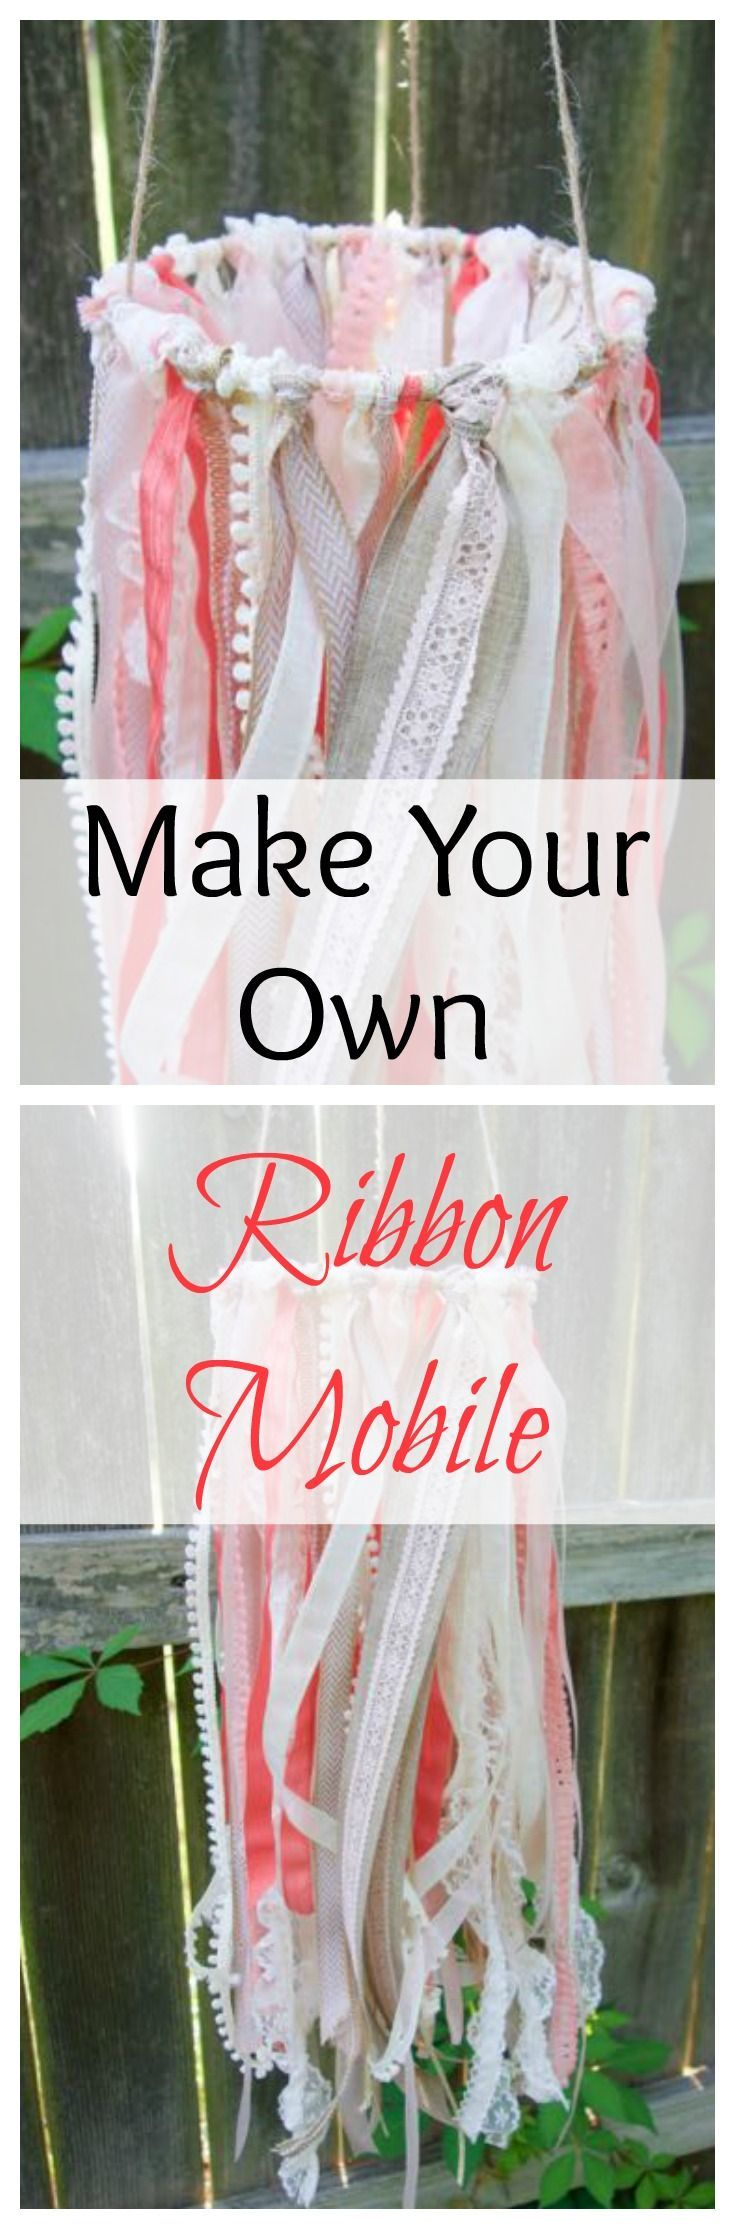 This DIY ribbon mobile is such a cute and simple craft. Make one for your baby's nursery, or your child's room. It's perfectly delicate and whimsical.